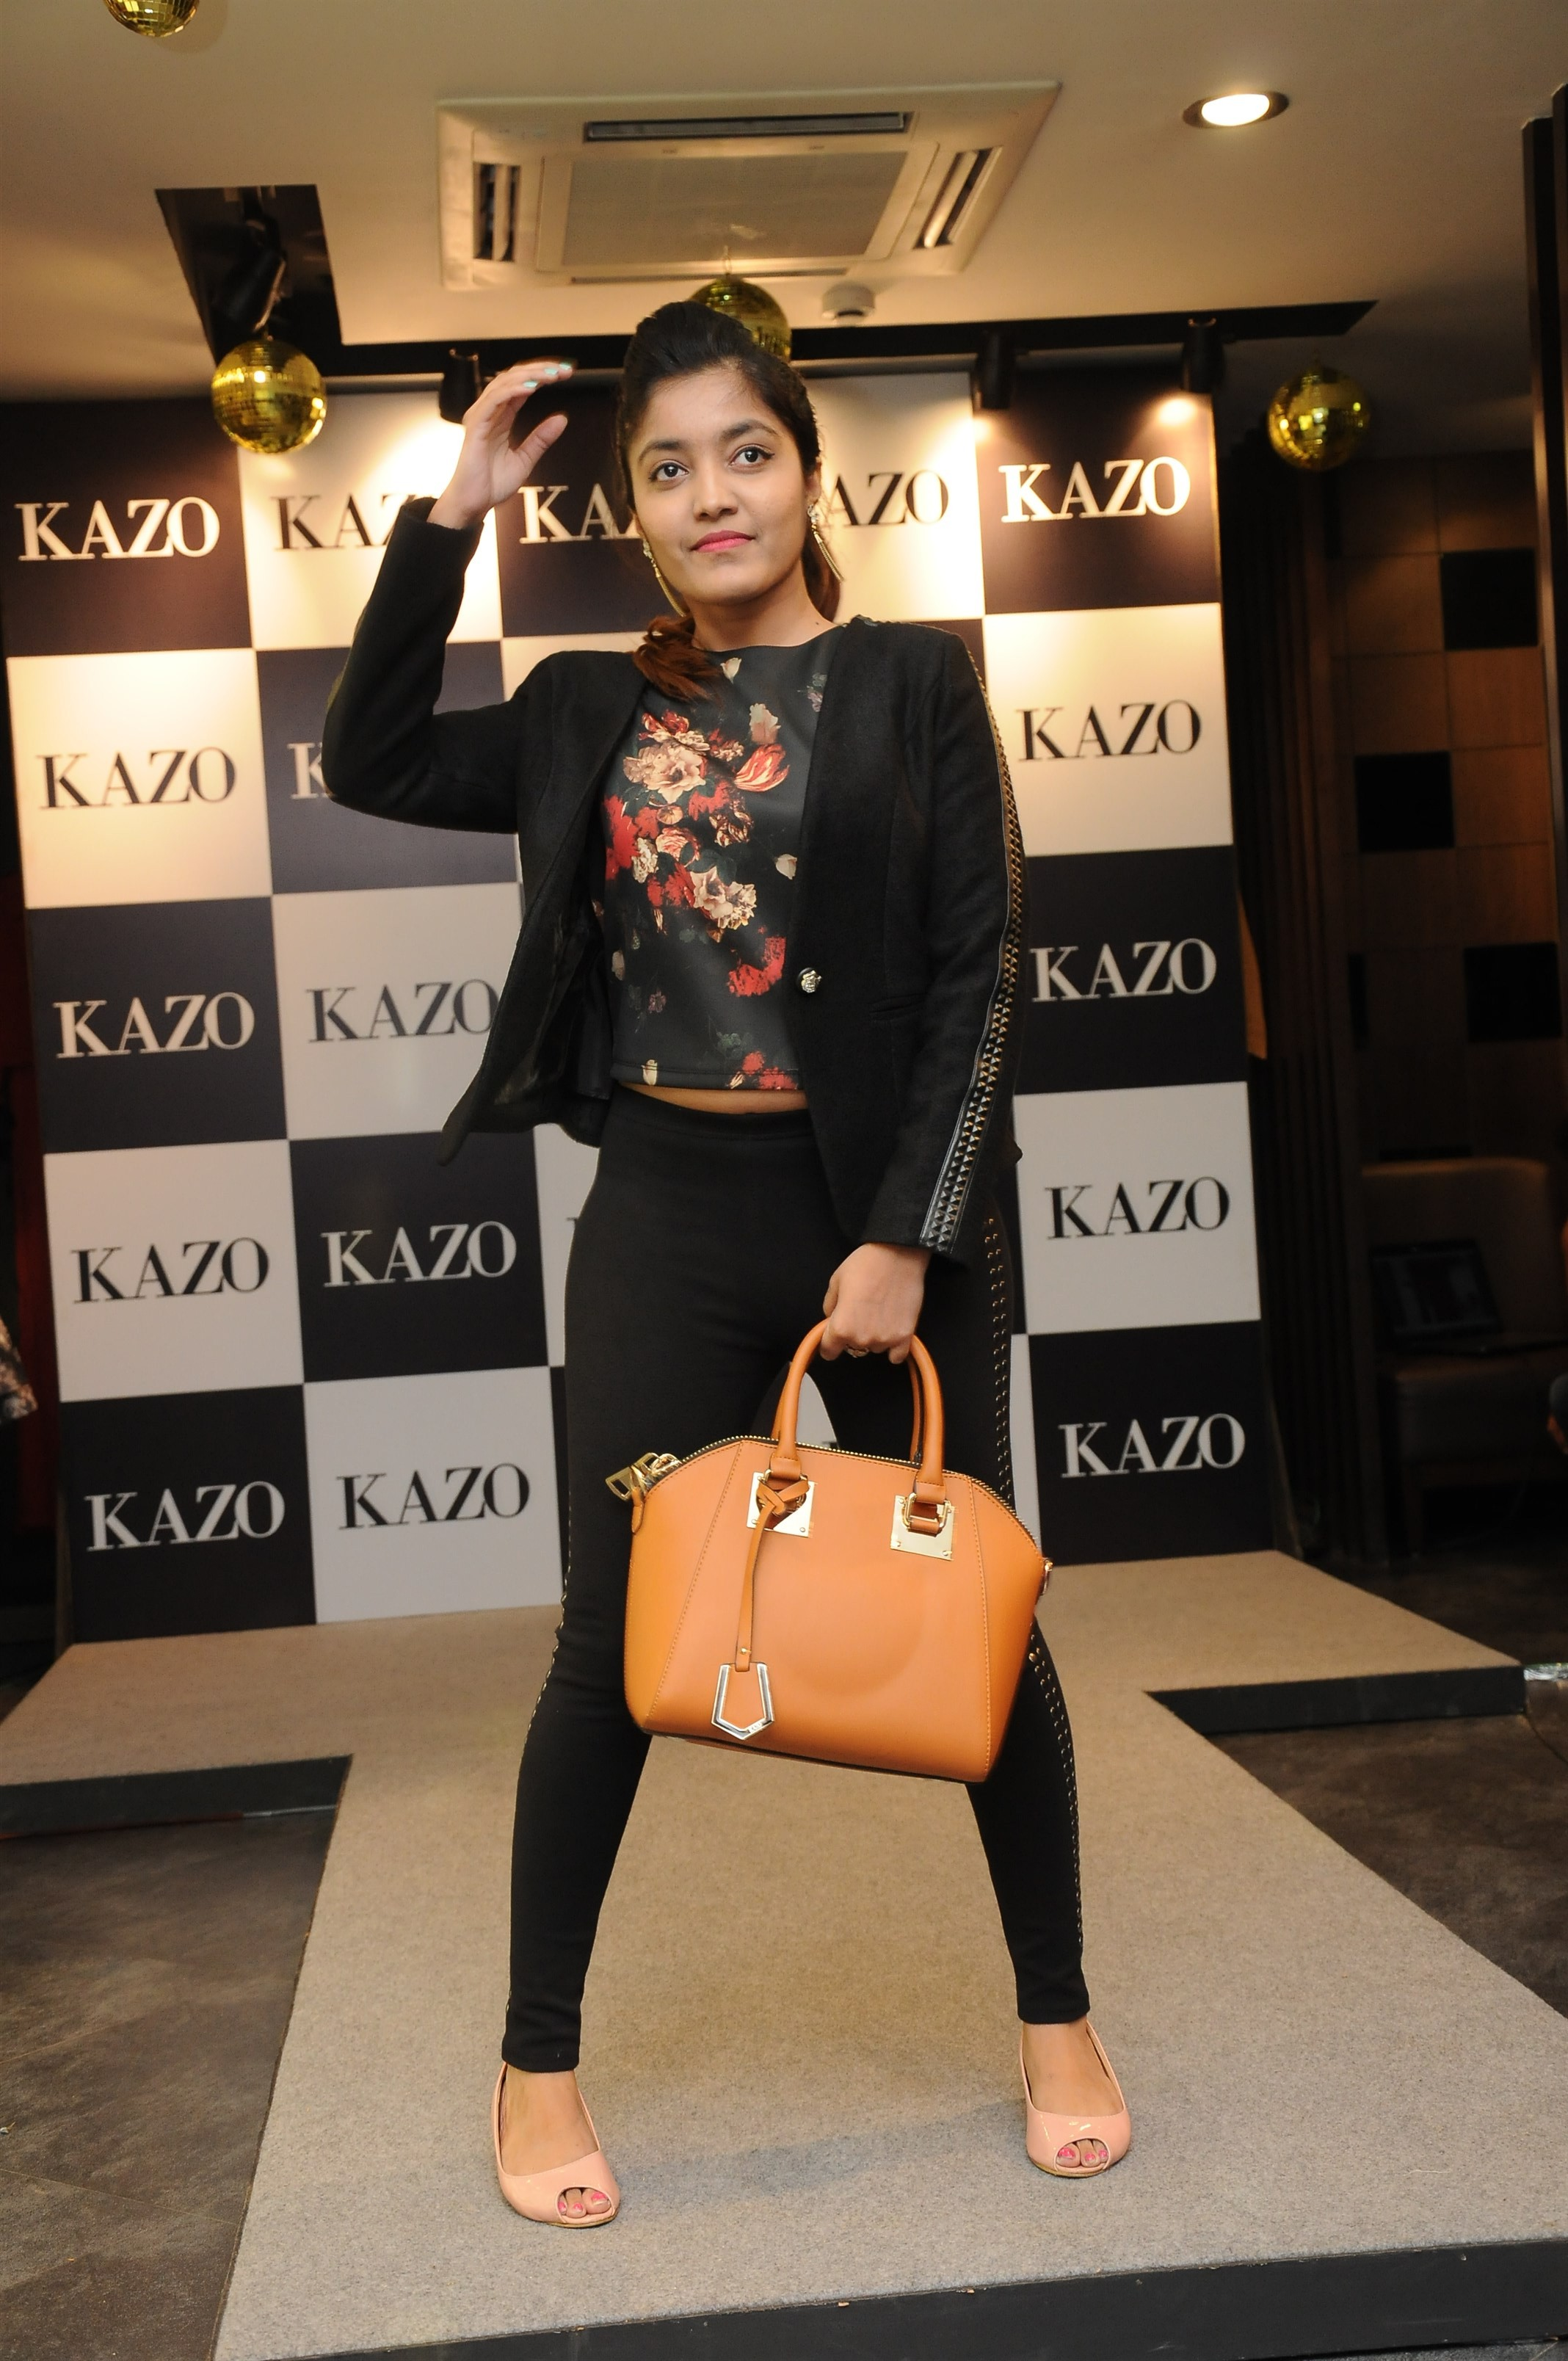 princy mascarenhas the jeromy diaries blogger at kazo(3216 x 2136)